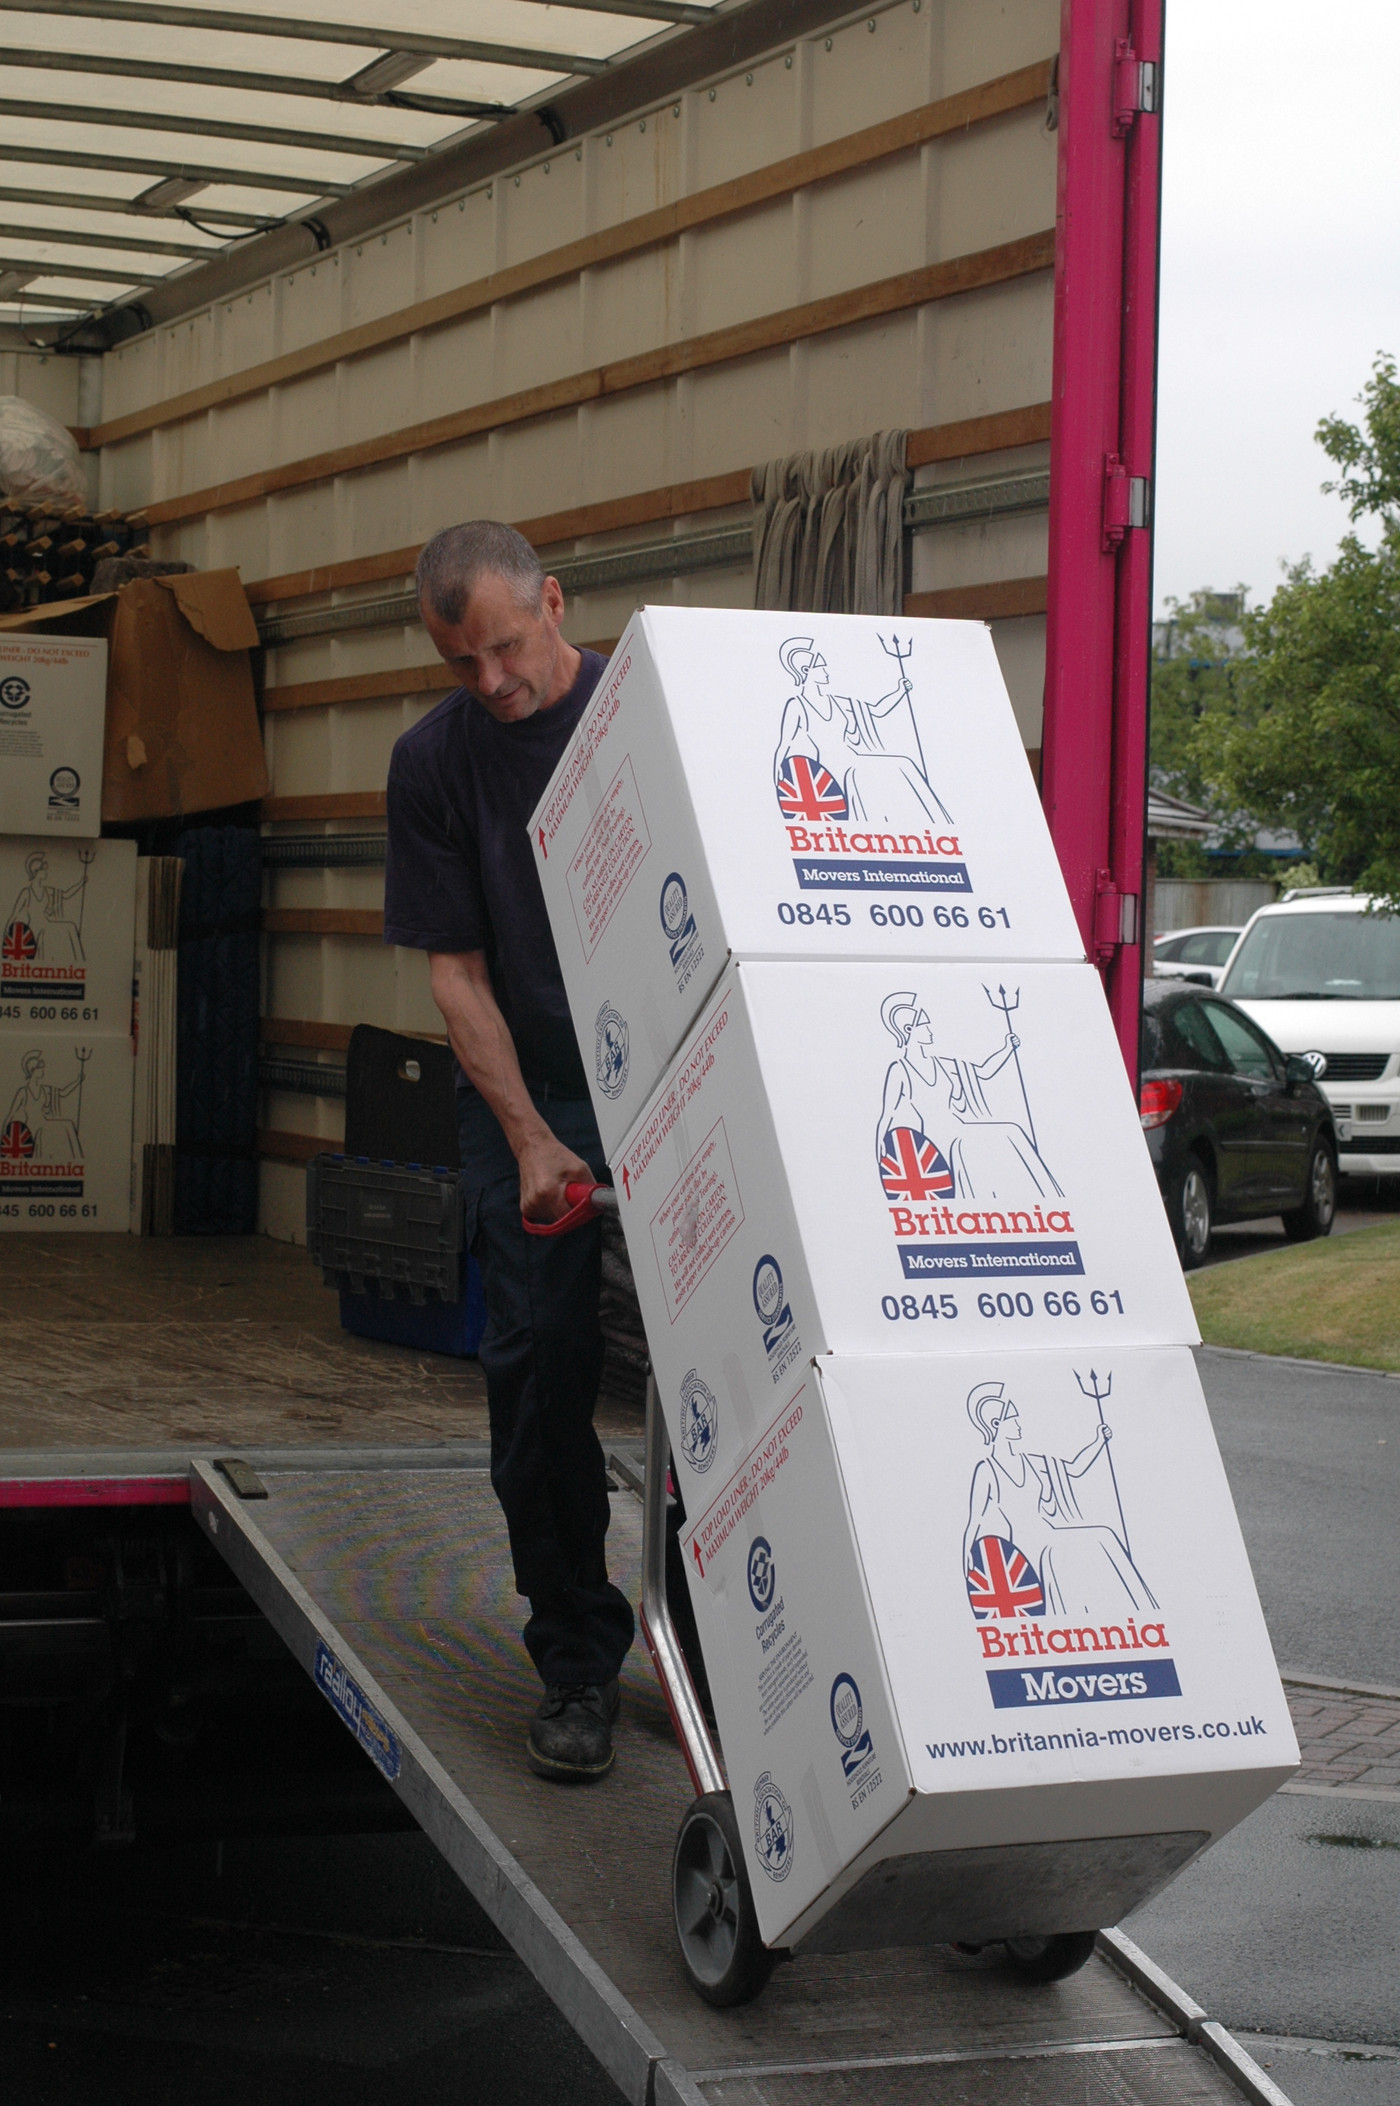 Loading cartons Moving Flat Pack Furniture Britannia Bradshaws